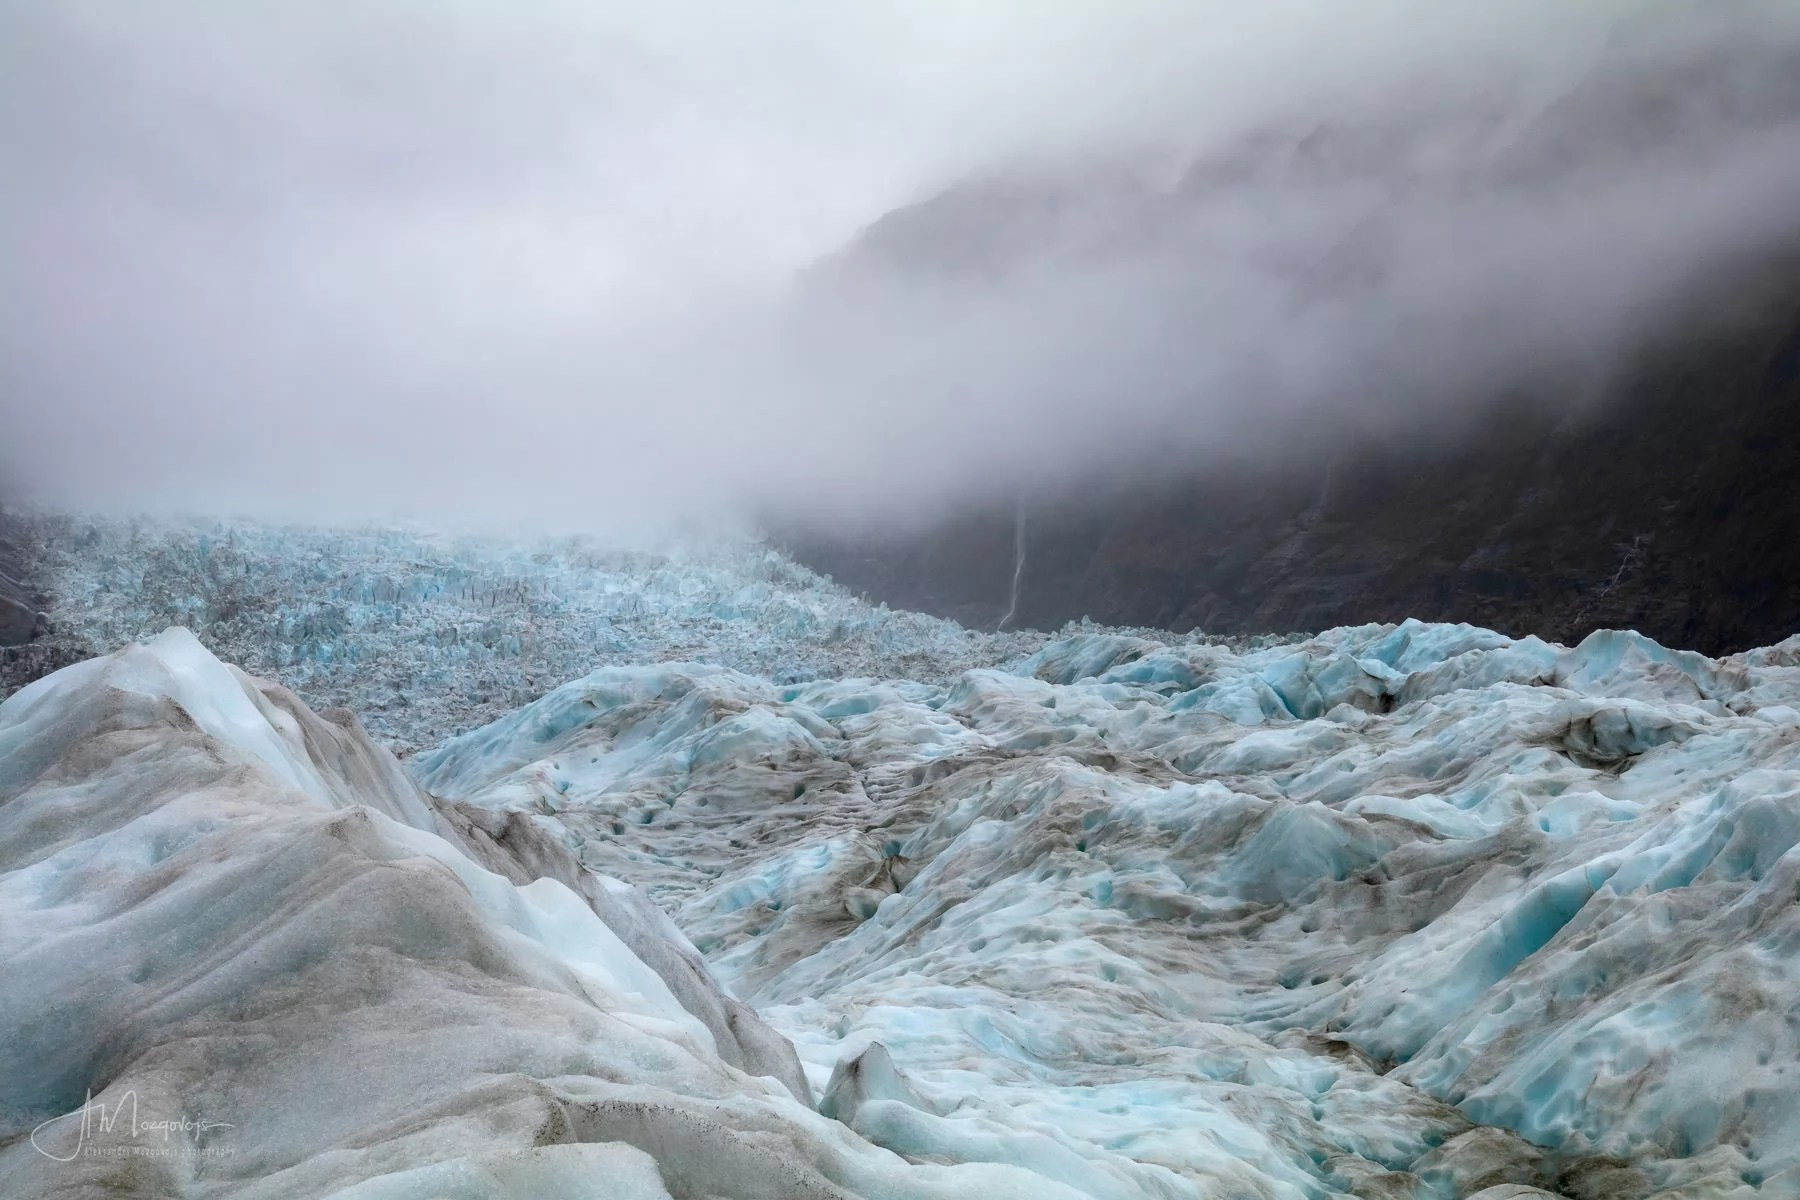 Bad weather rolling in at Fox Glacier hell hike